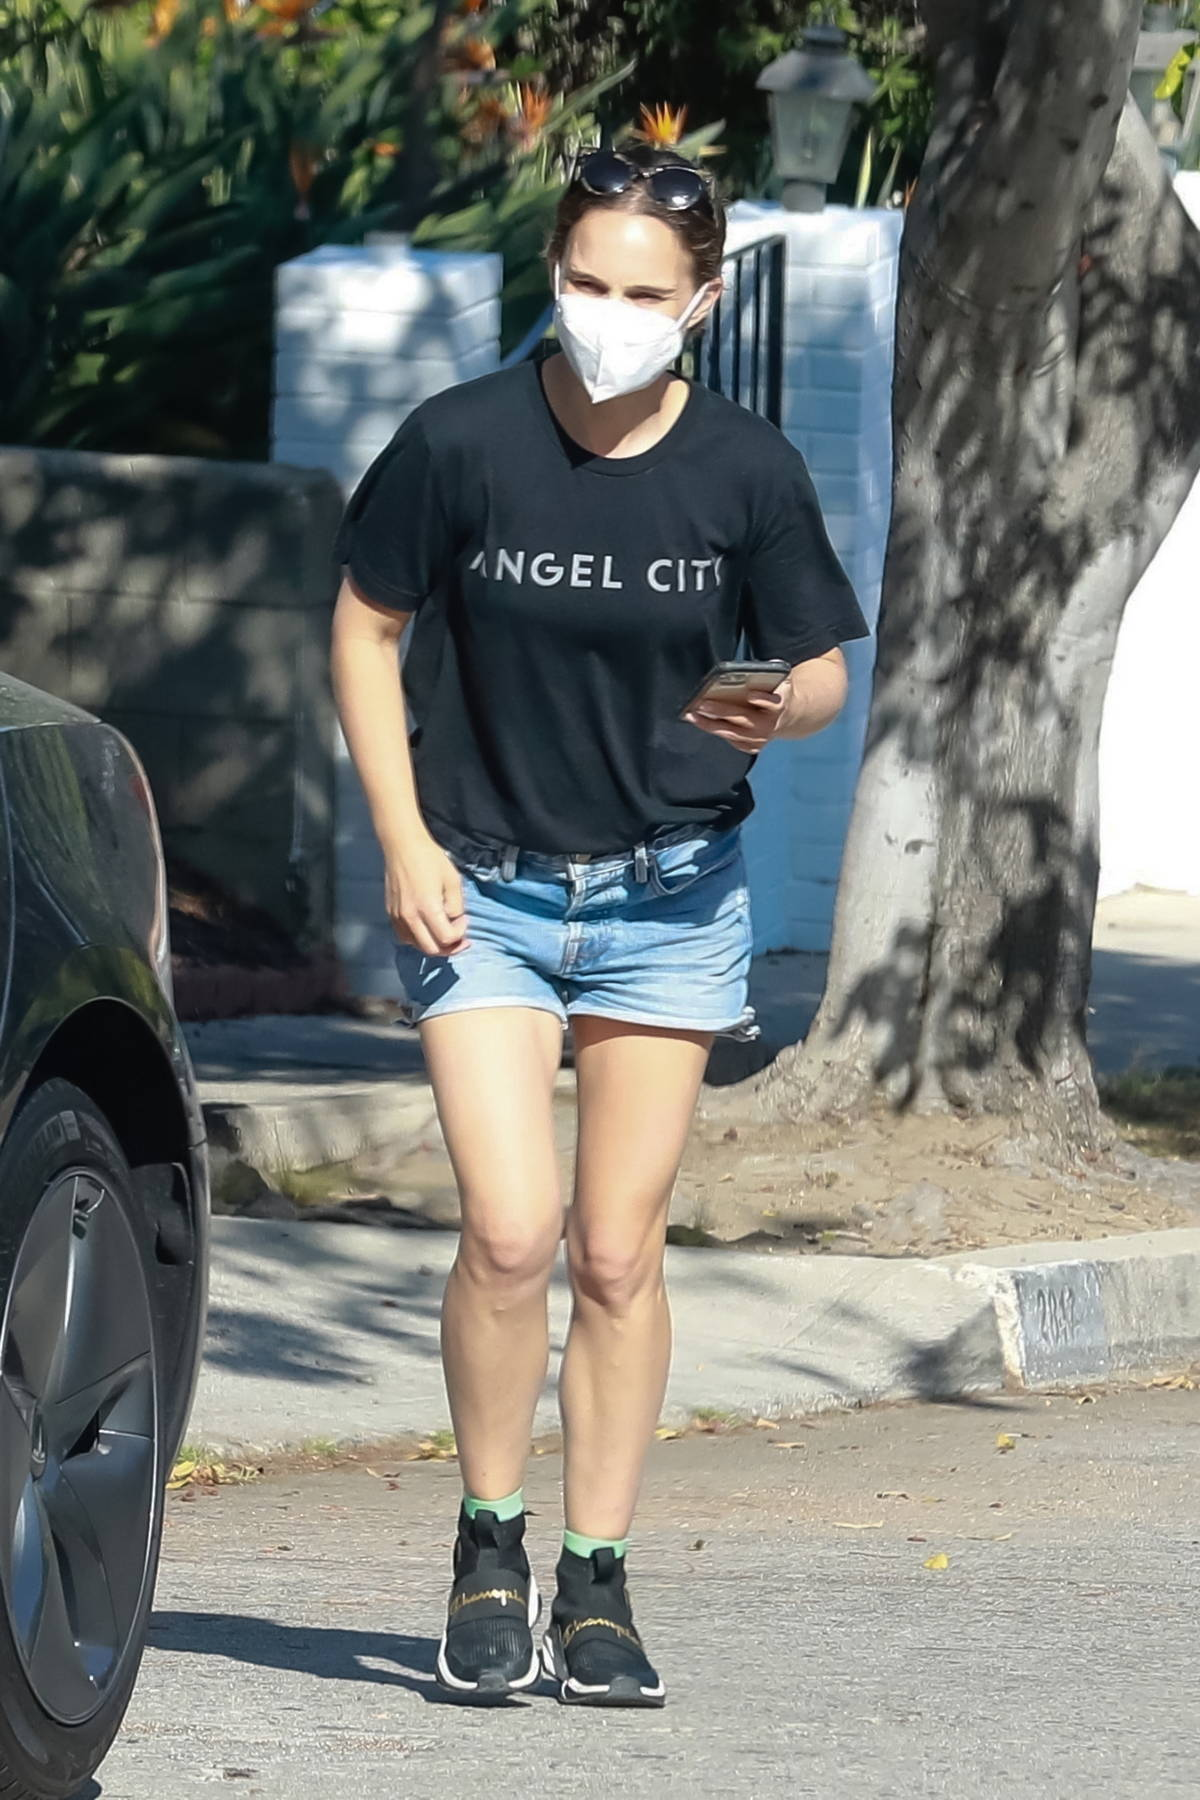 Natalie Portman seen leaving after visiting a friend's house in Los Angeles